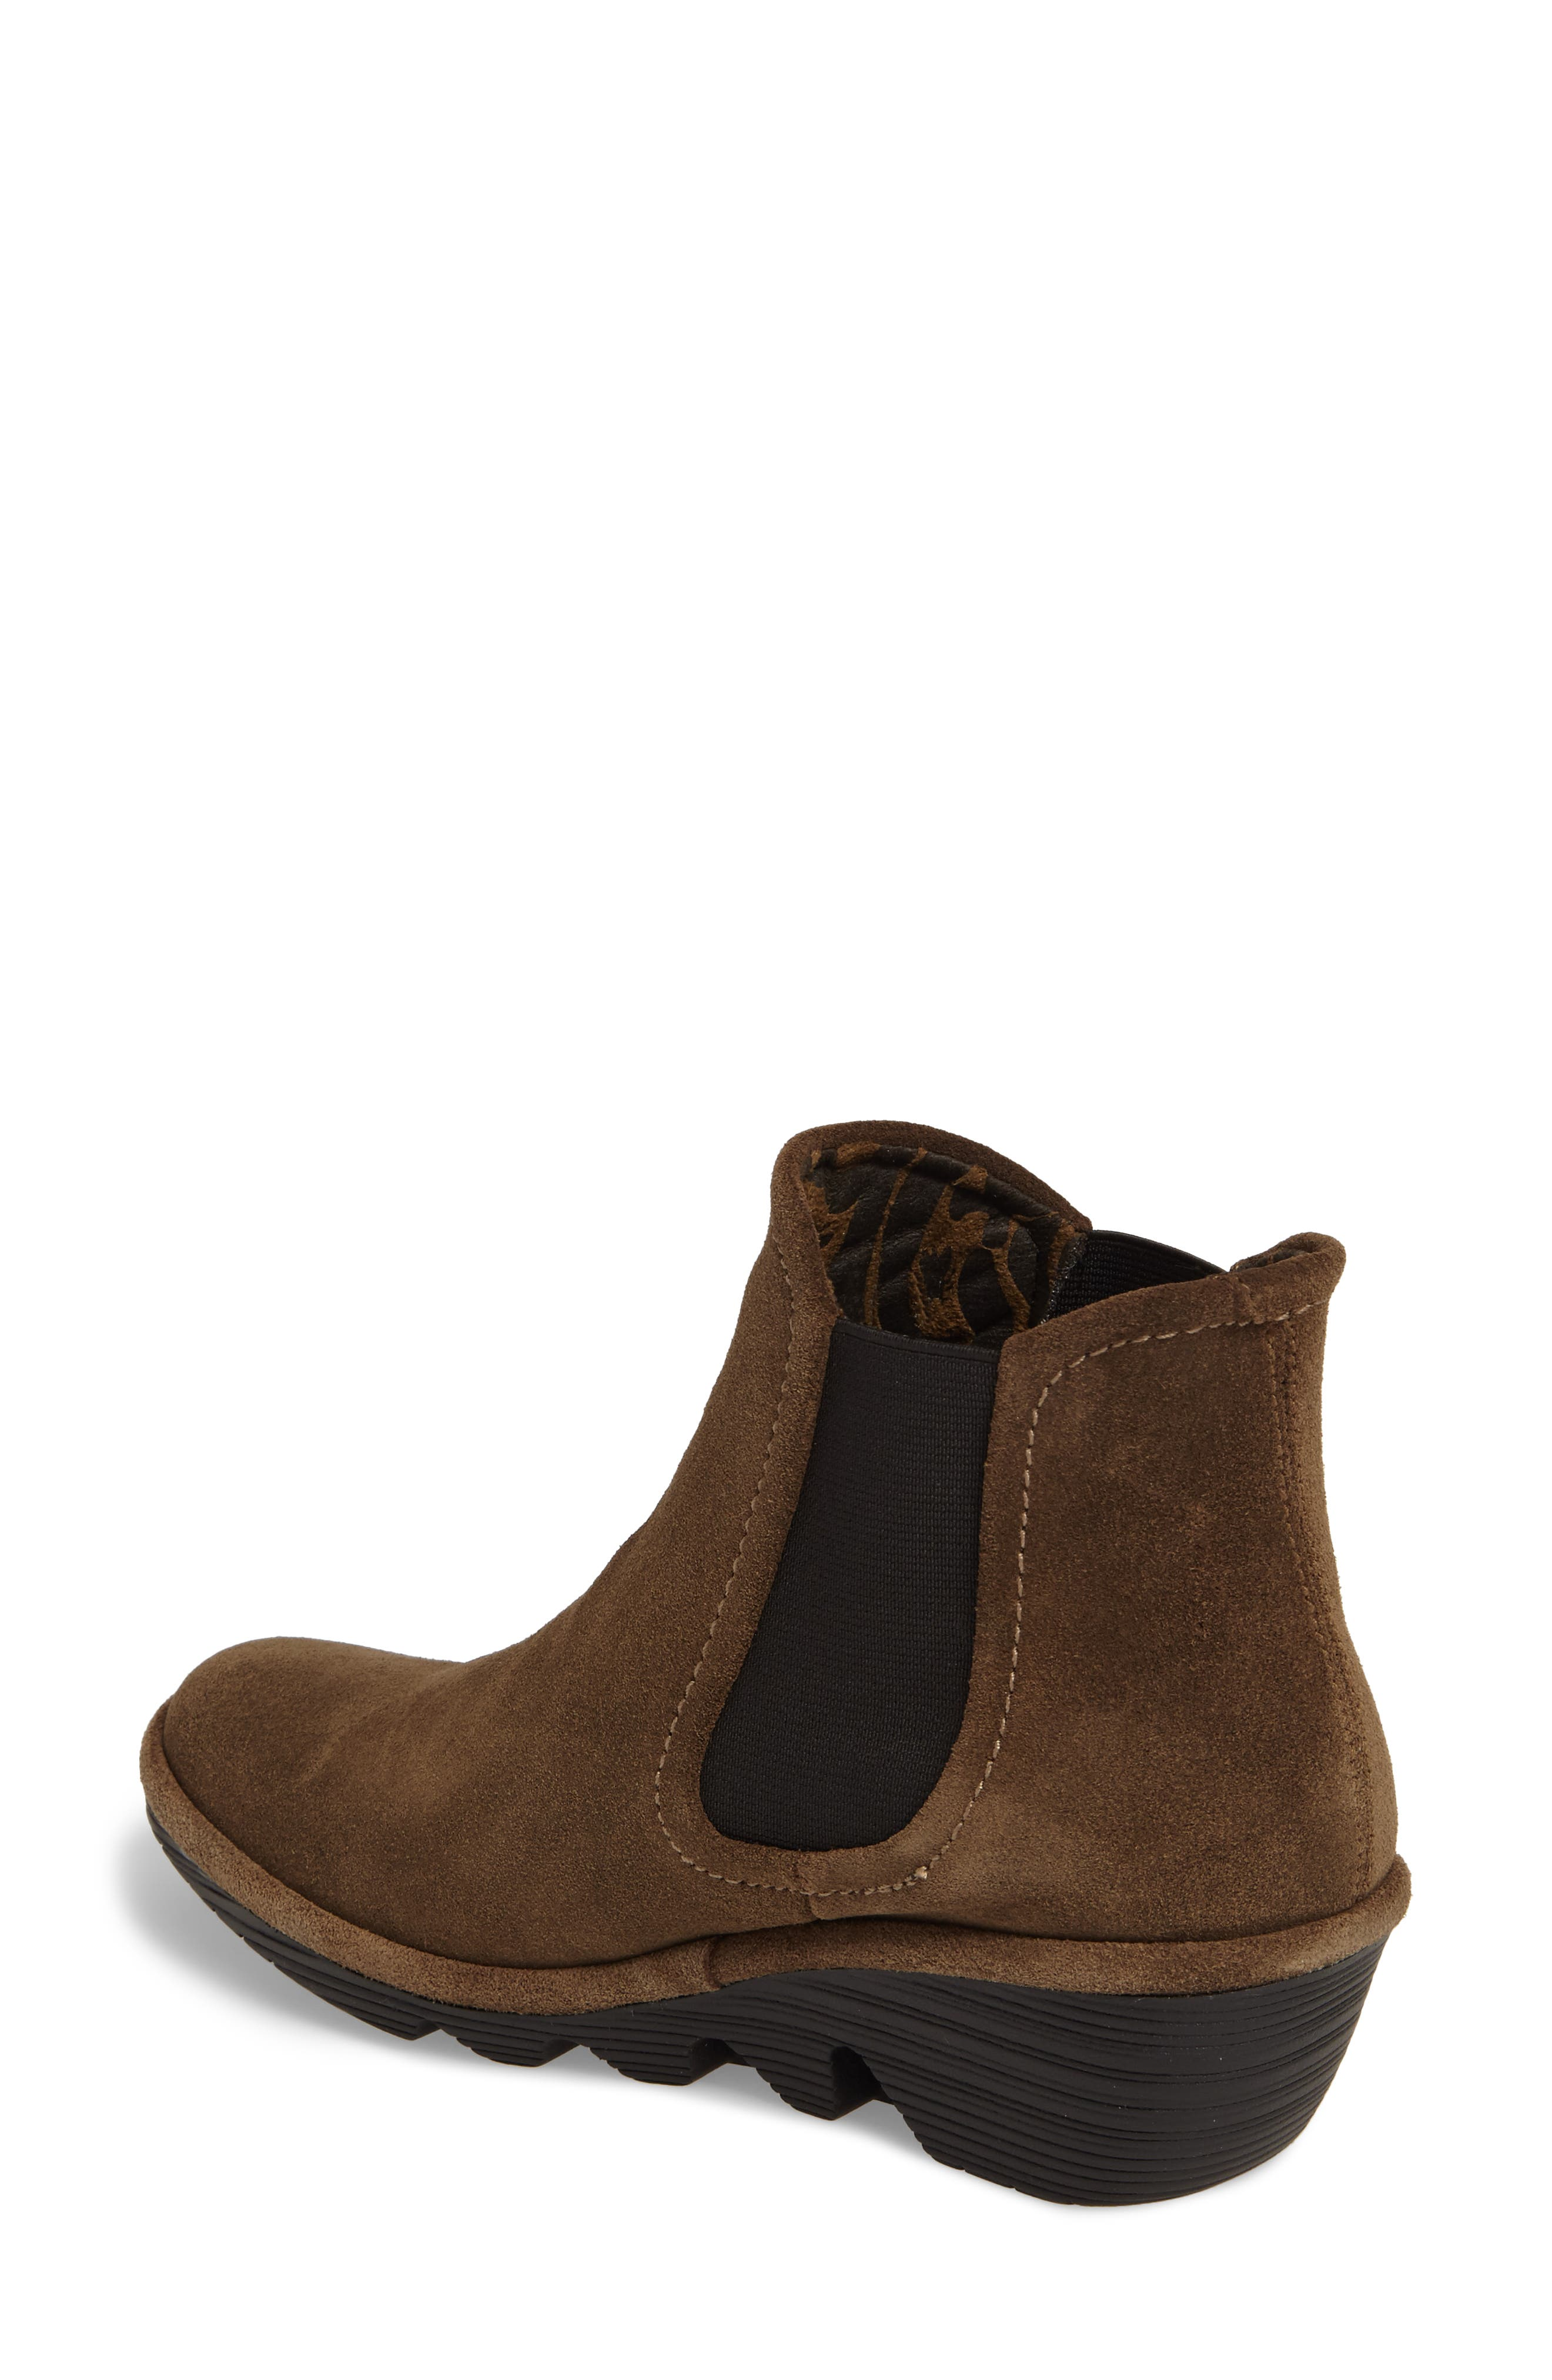 'Phil' Chelsea Boot,                             Alternate thumbnail 8, color,